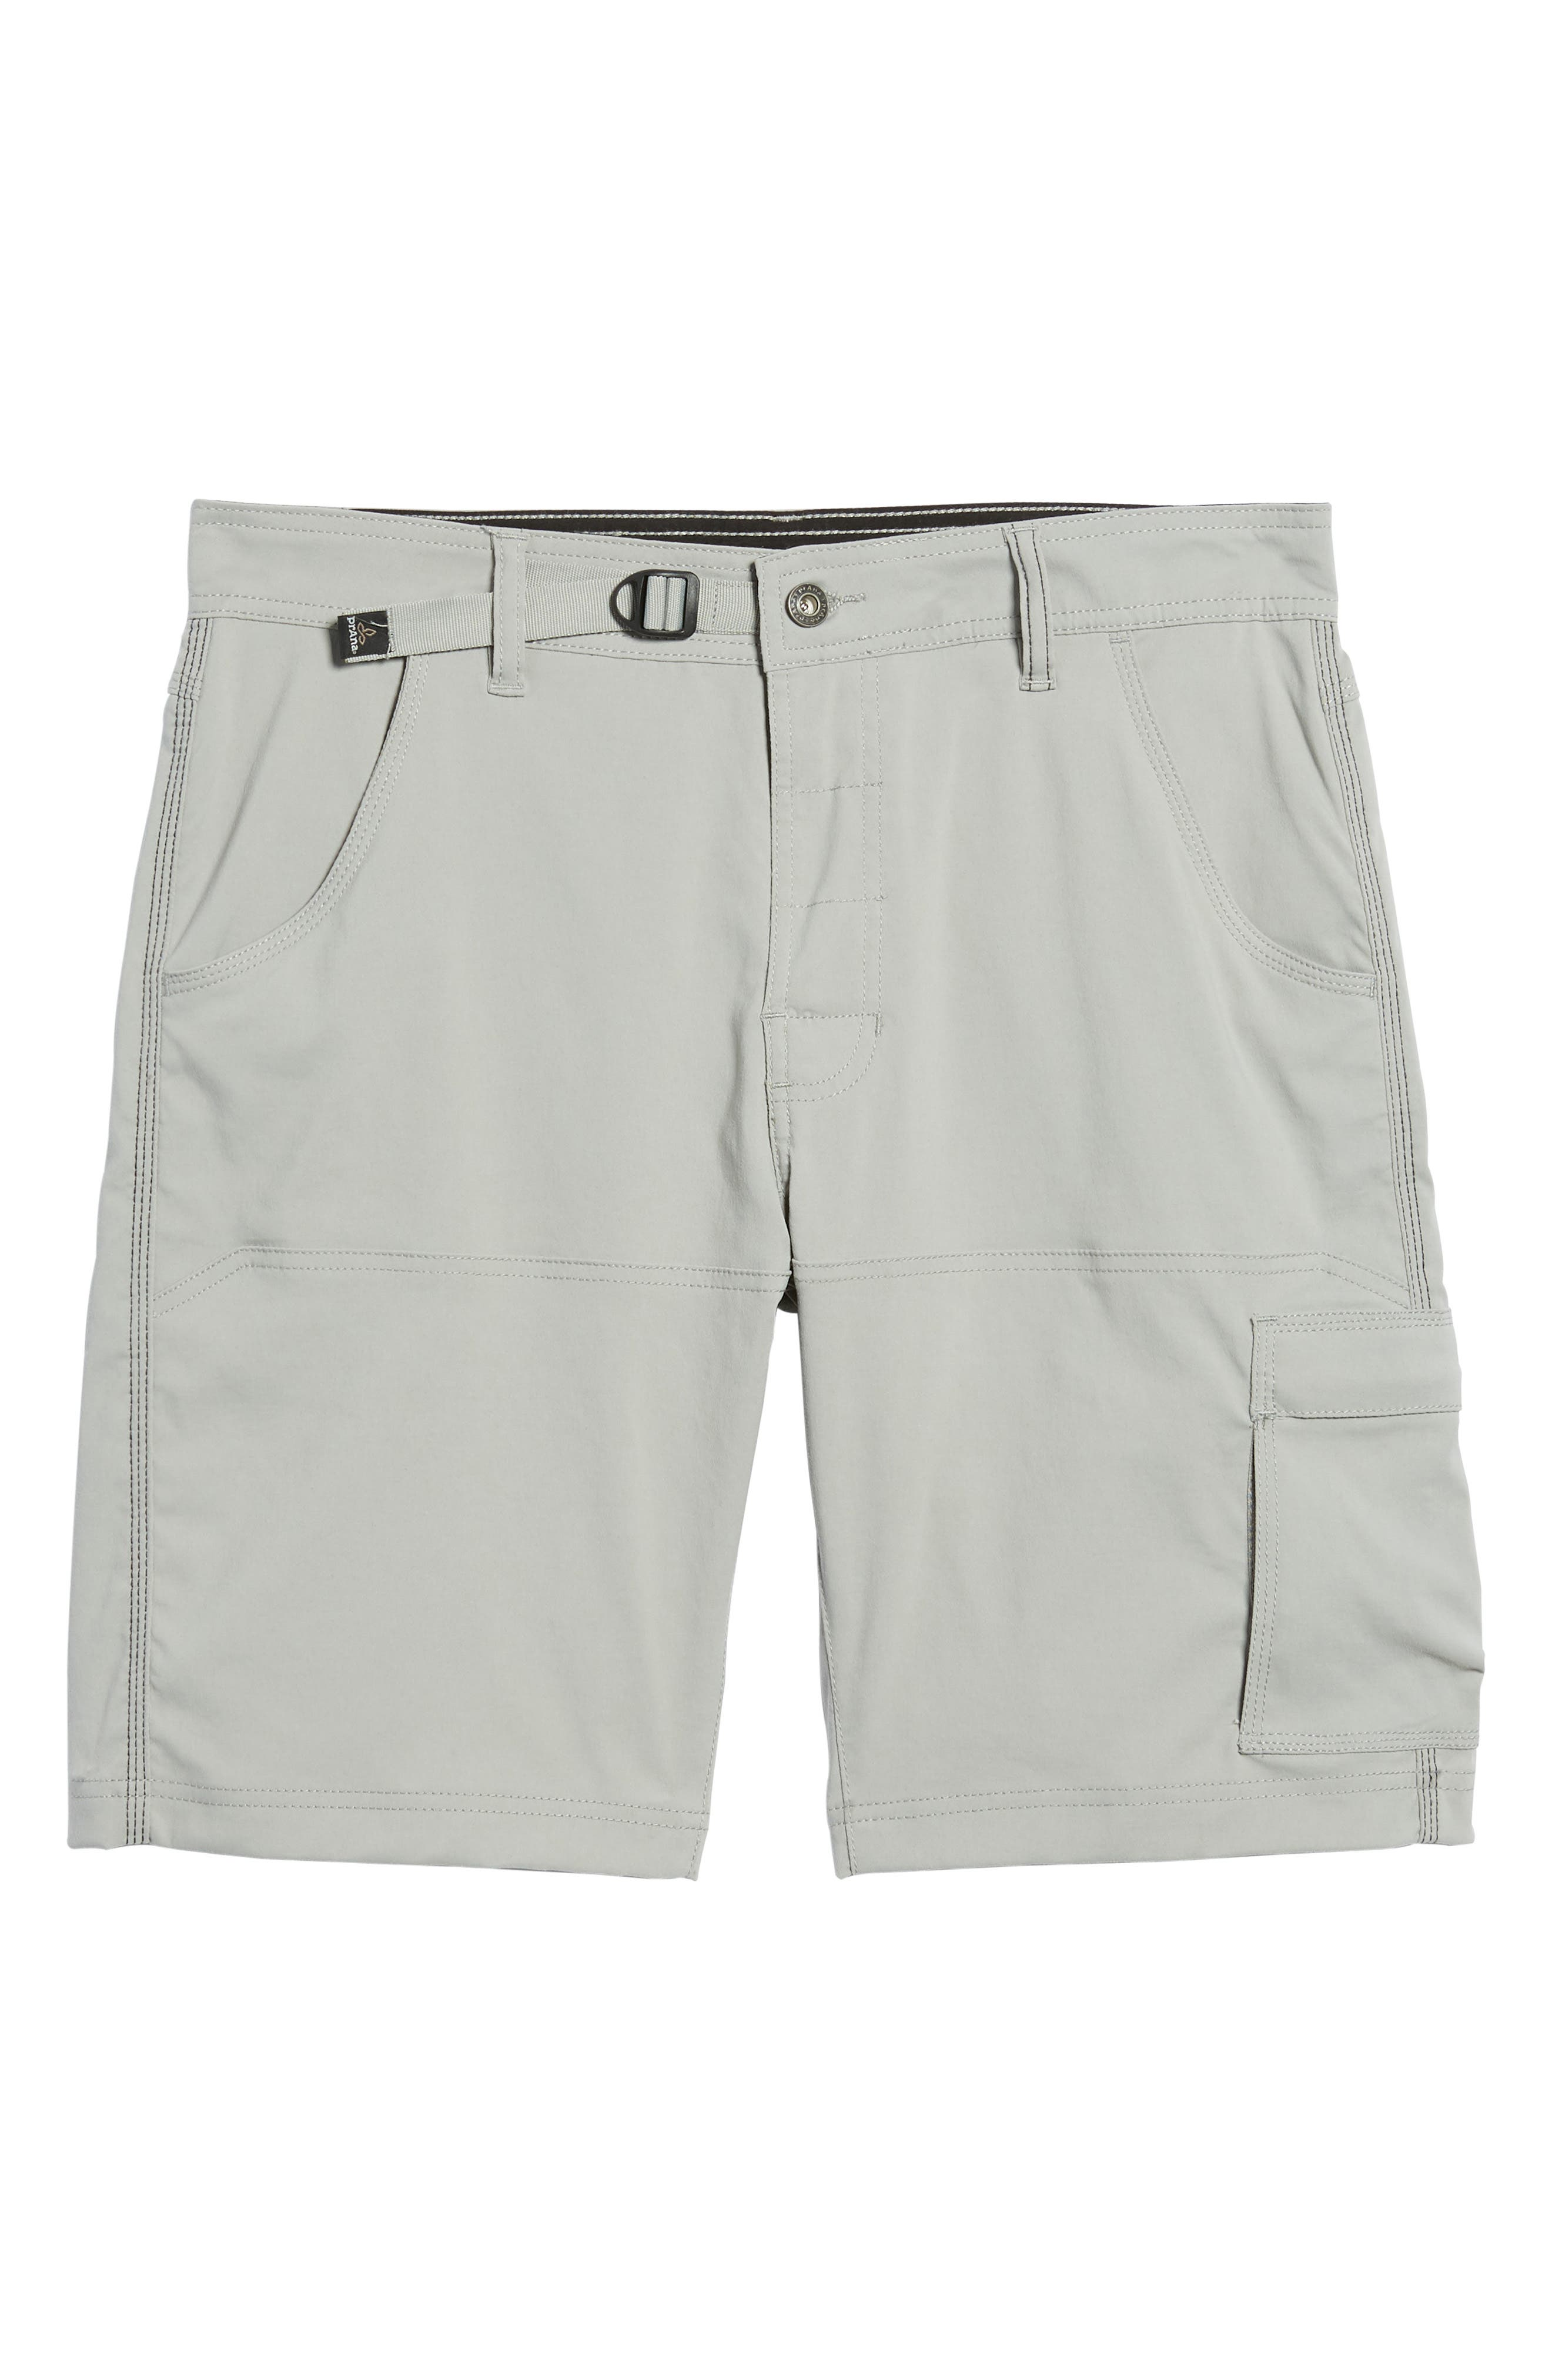 Zion Stretch Shorts,                             Alternate thumbnail 6, color,                             Grey